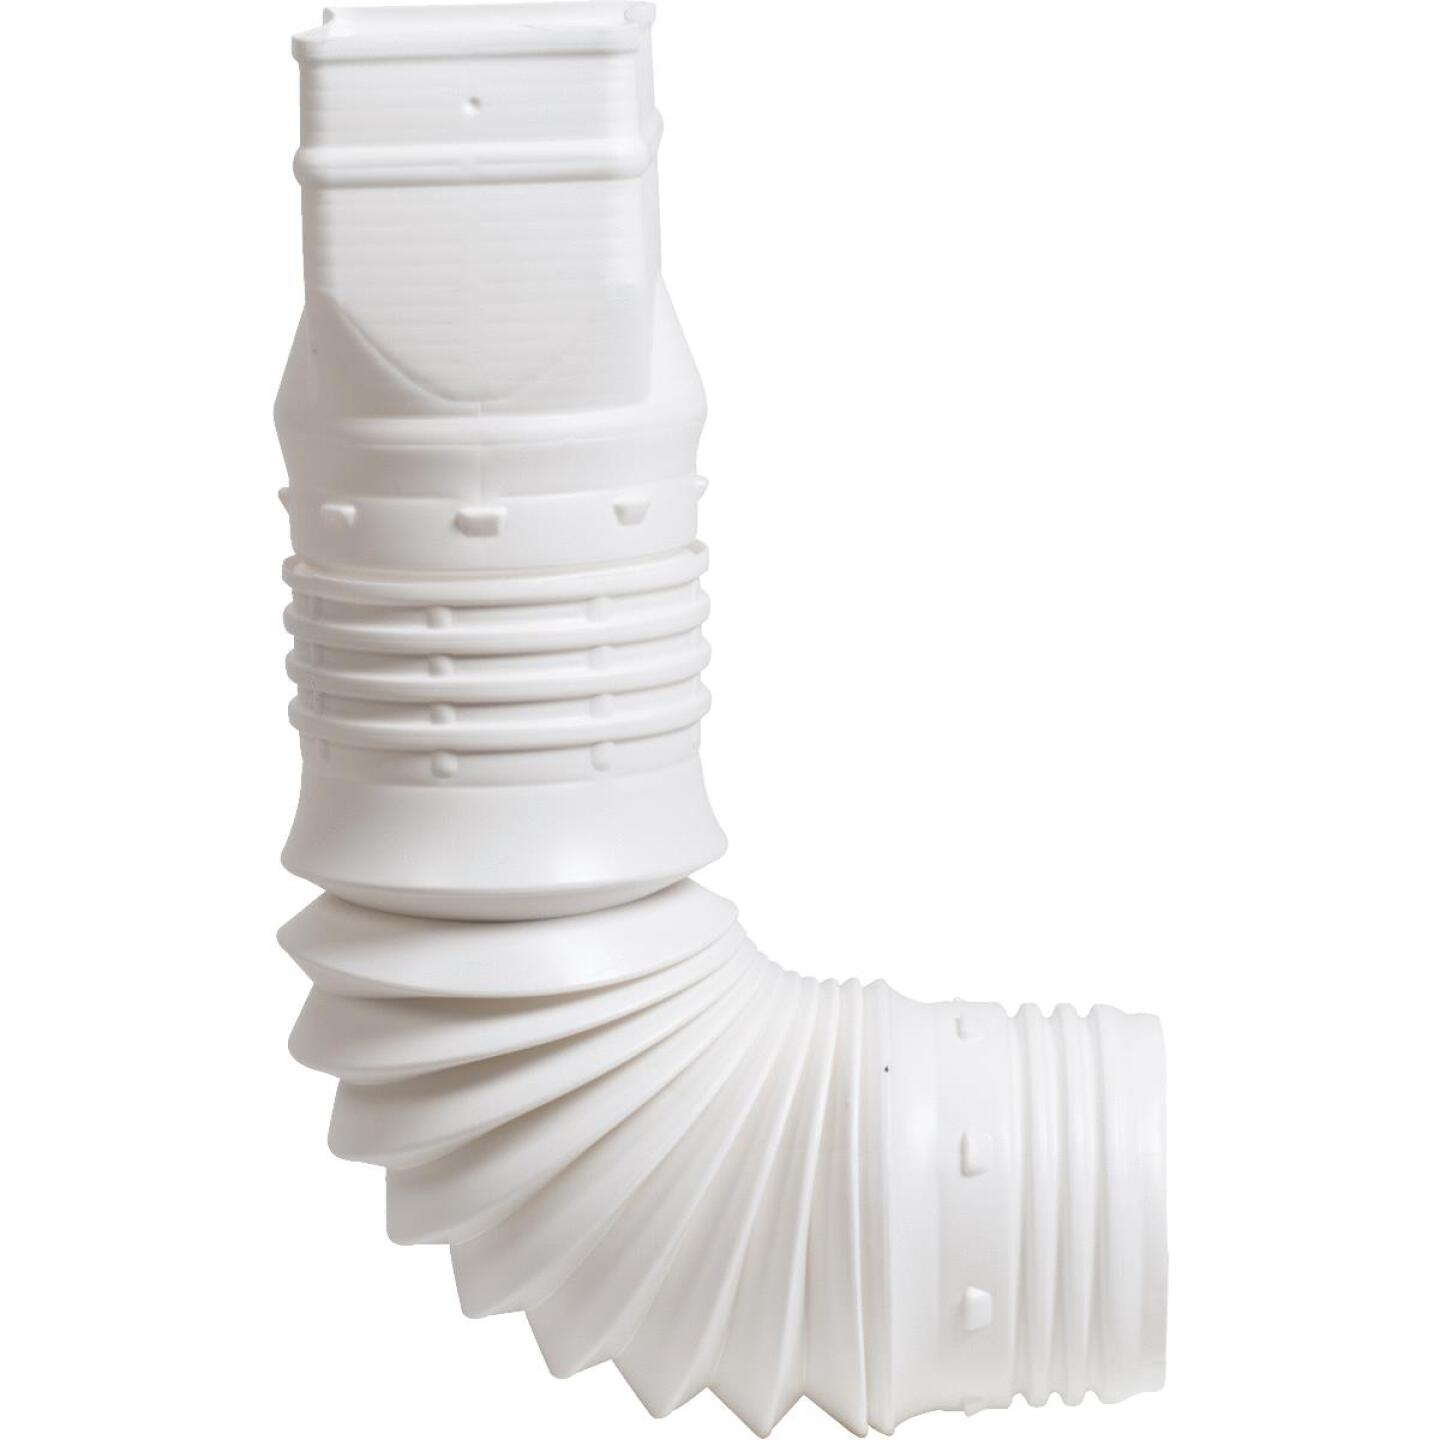 Amerimax Flex-A-Spout 2 In. X 3 In. X 3 In. Or 4 In. Downspout Adapter Image 1